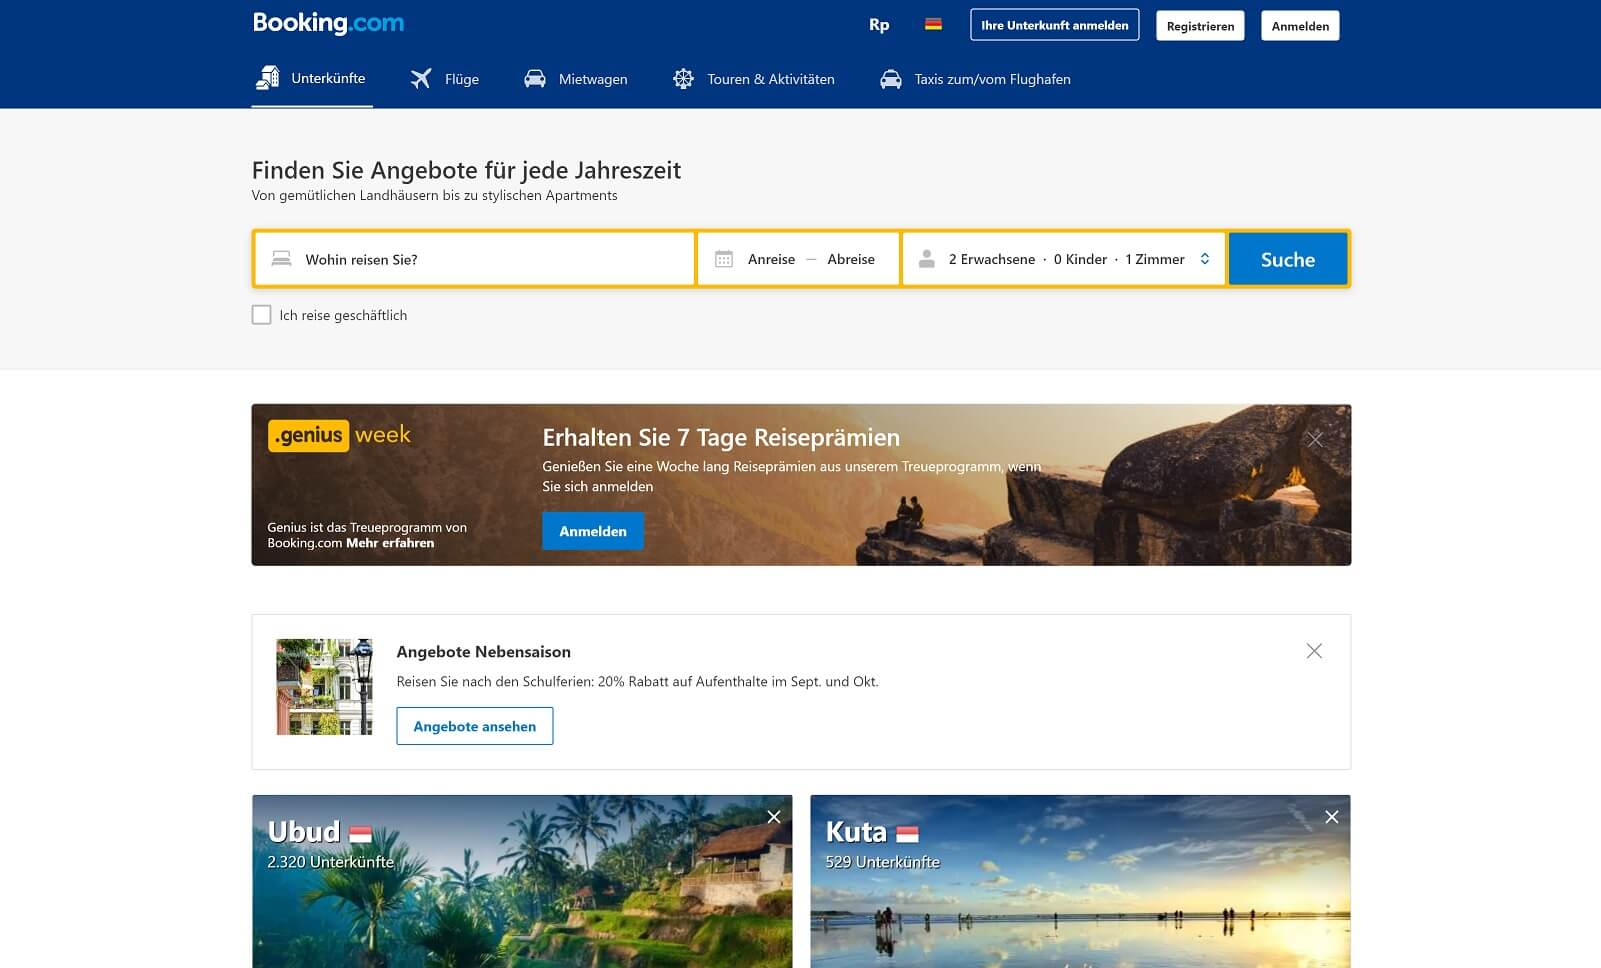 Conversion-Optimierung bei Booking.com